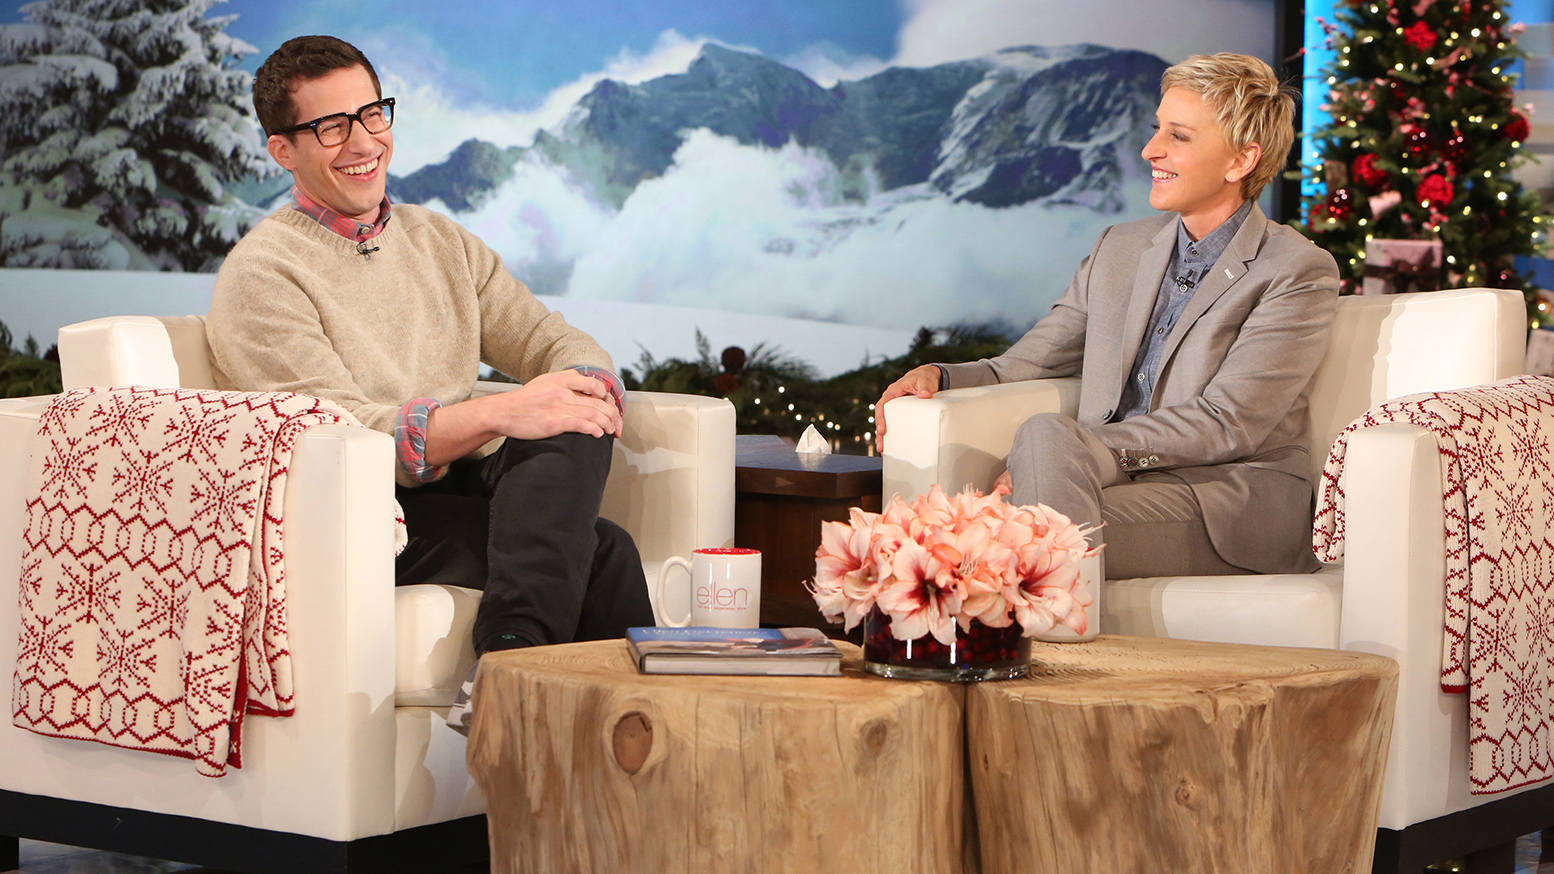 Wedding Gift Giving Etiquette 2015 : Andy Samberg Shares Funny Wedding Anniversary Gifts with Ellen